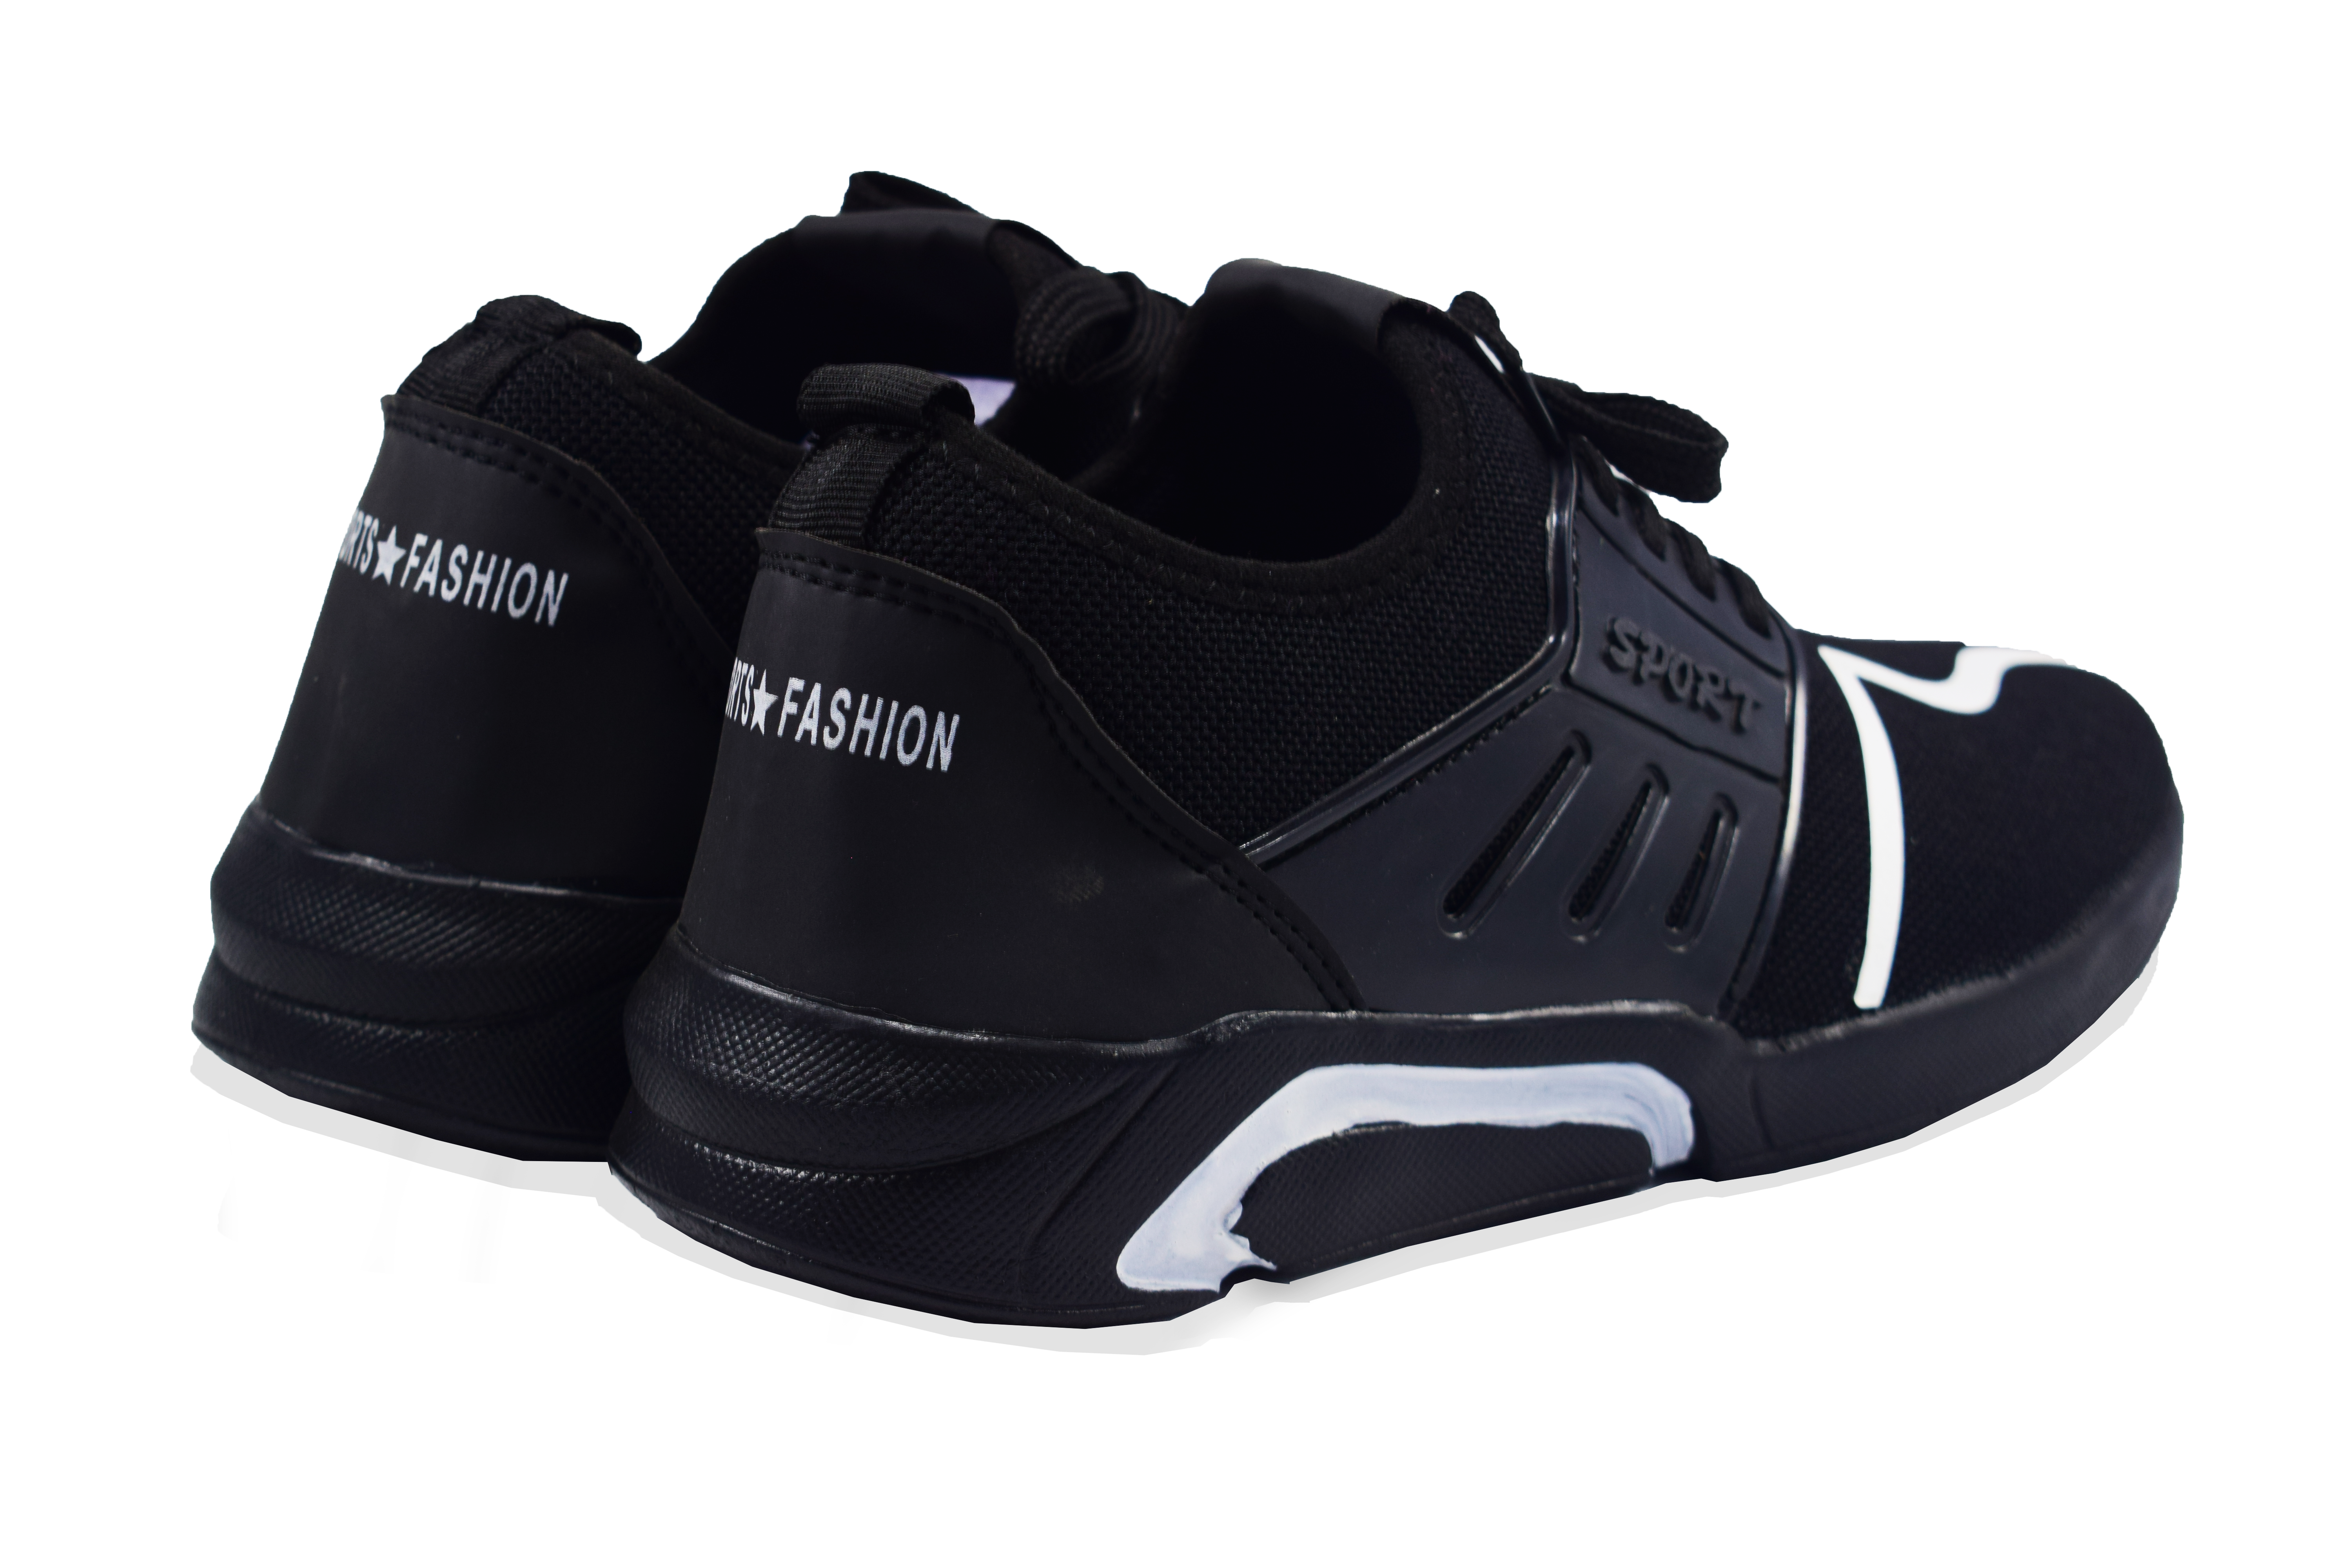 BRIFAR COMFORTABLE & TRENDY SPORTS SHOES ARE RELIABLE FOR ANY 0BFS0791-BLK (BLACK, 7-10, 4 PAIR)